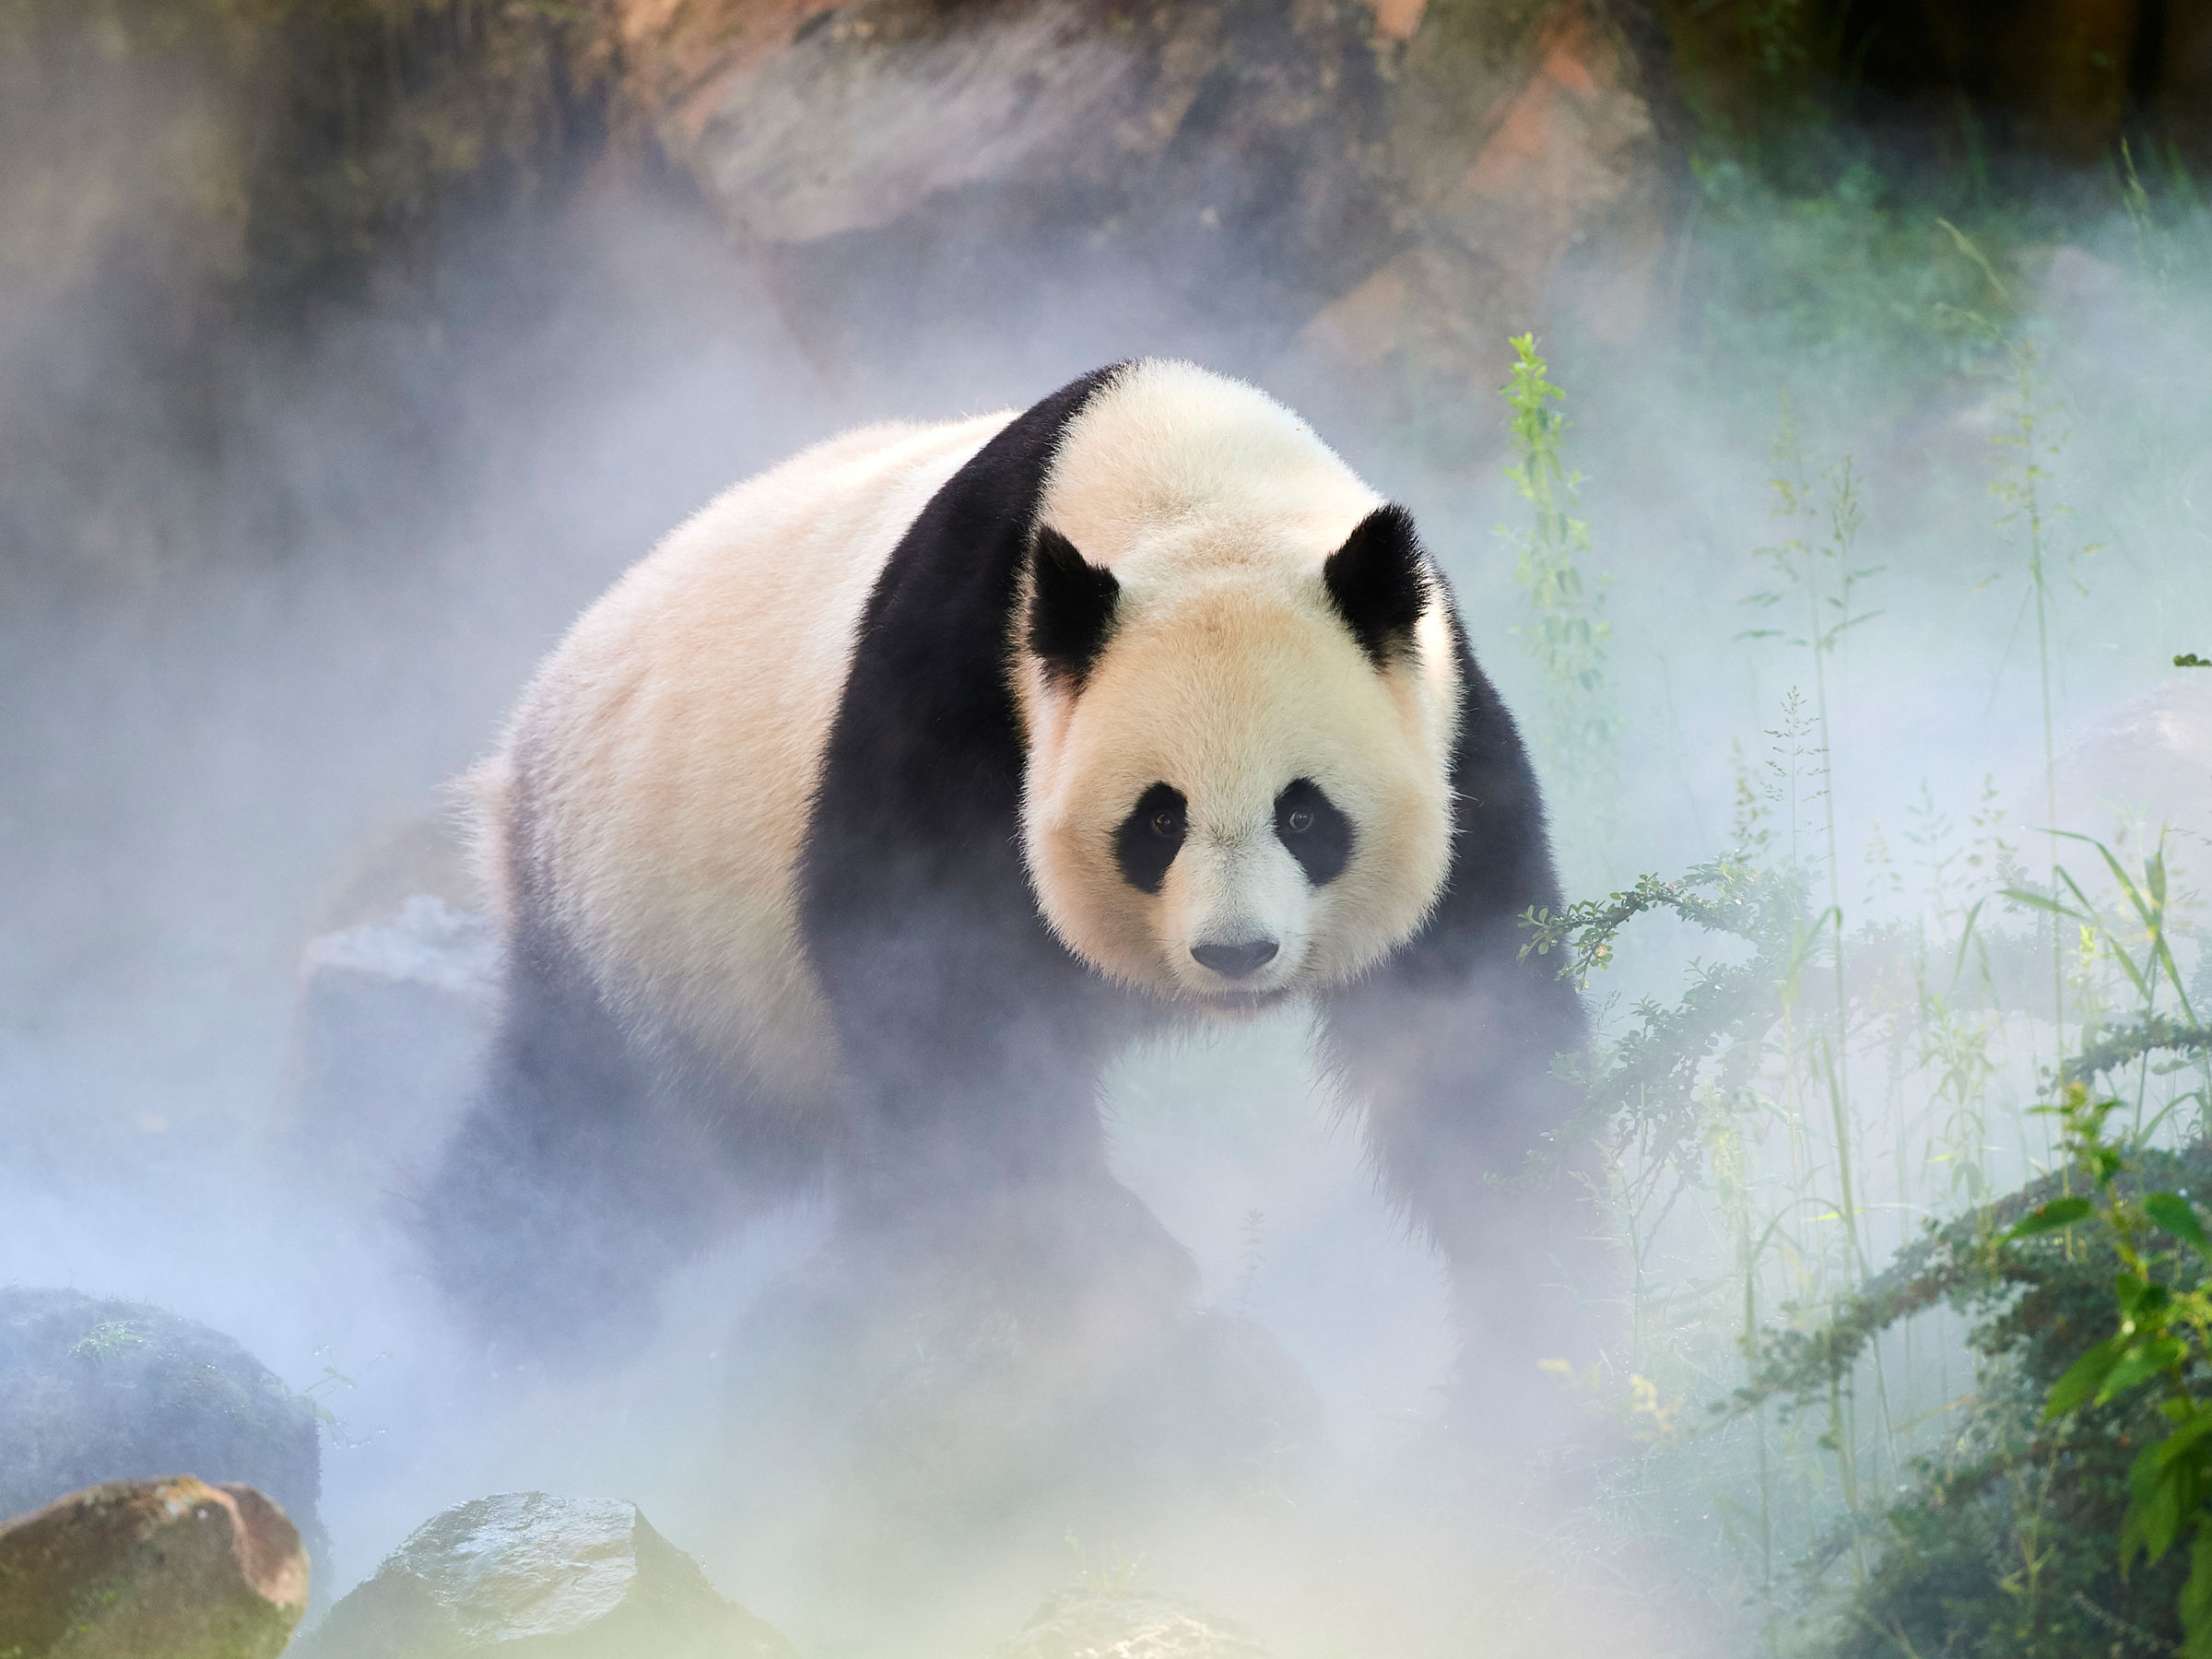 Giant panda (Ailuropoda melanoleuca) female, Huan Huan, out in her enclosure in mist, Captive at Beauval Zoo, Saint Aignan sur Cher, France The mist is created artificially by machine, in order to create a cooler environment, closer to the conditions in their natural mountain habitat in China